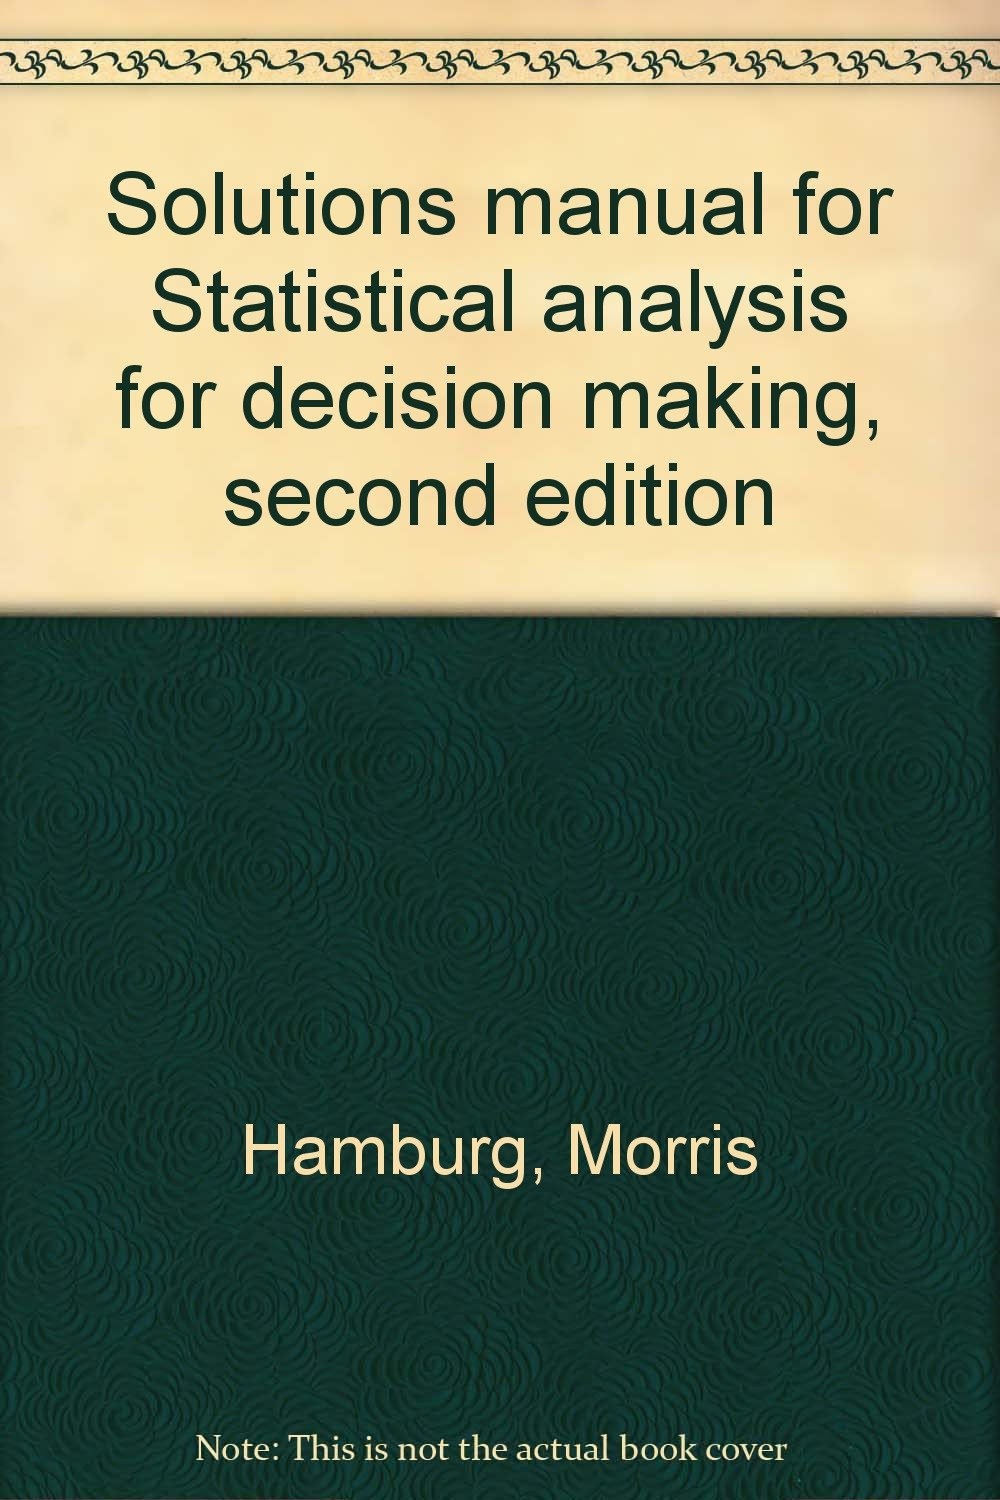 Solutions manual for Statistical analysis for decision making, second  edition: Morris Hamburg: 9780155837485: Amazon.com: Books